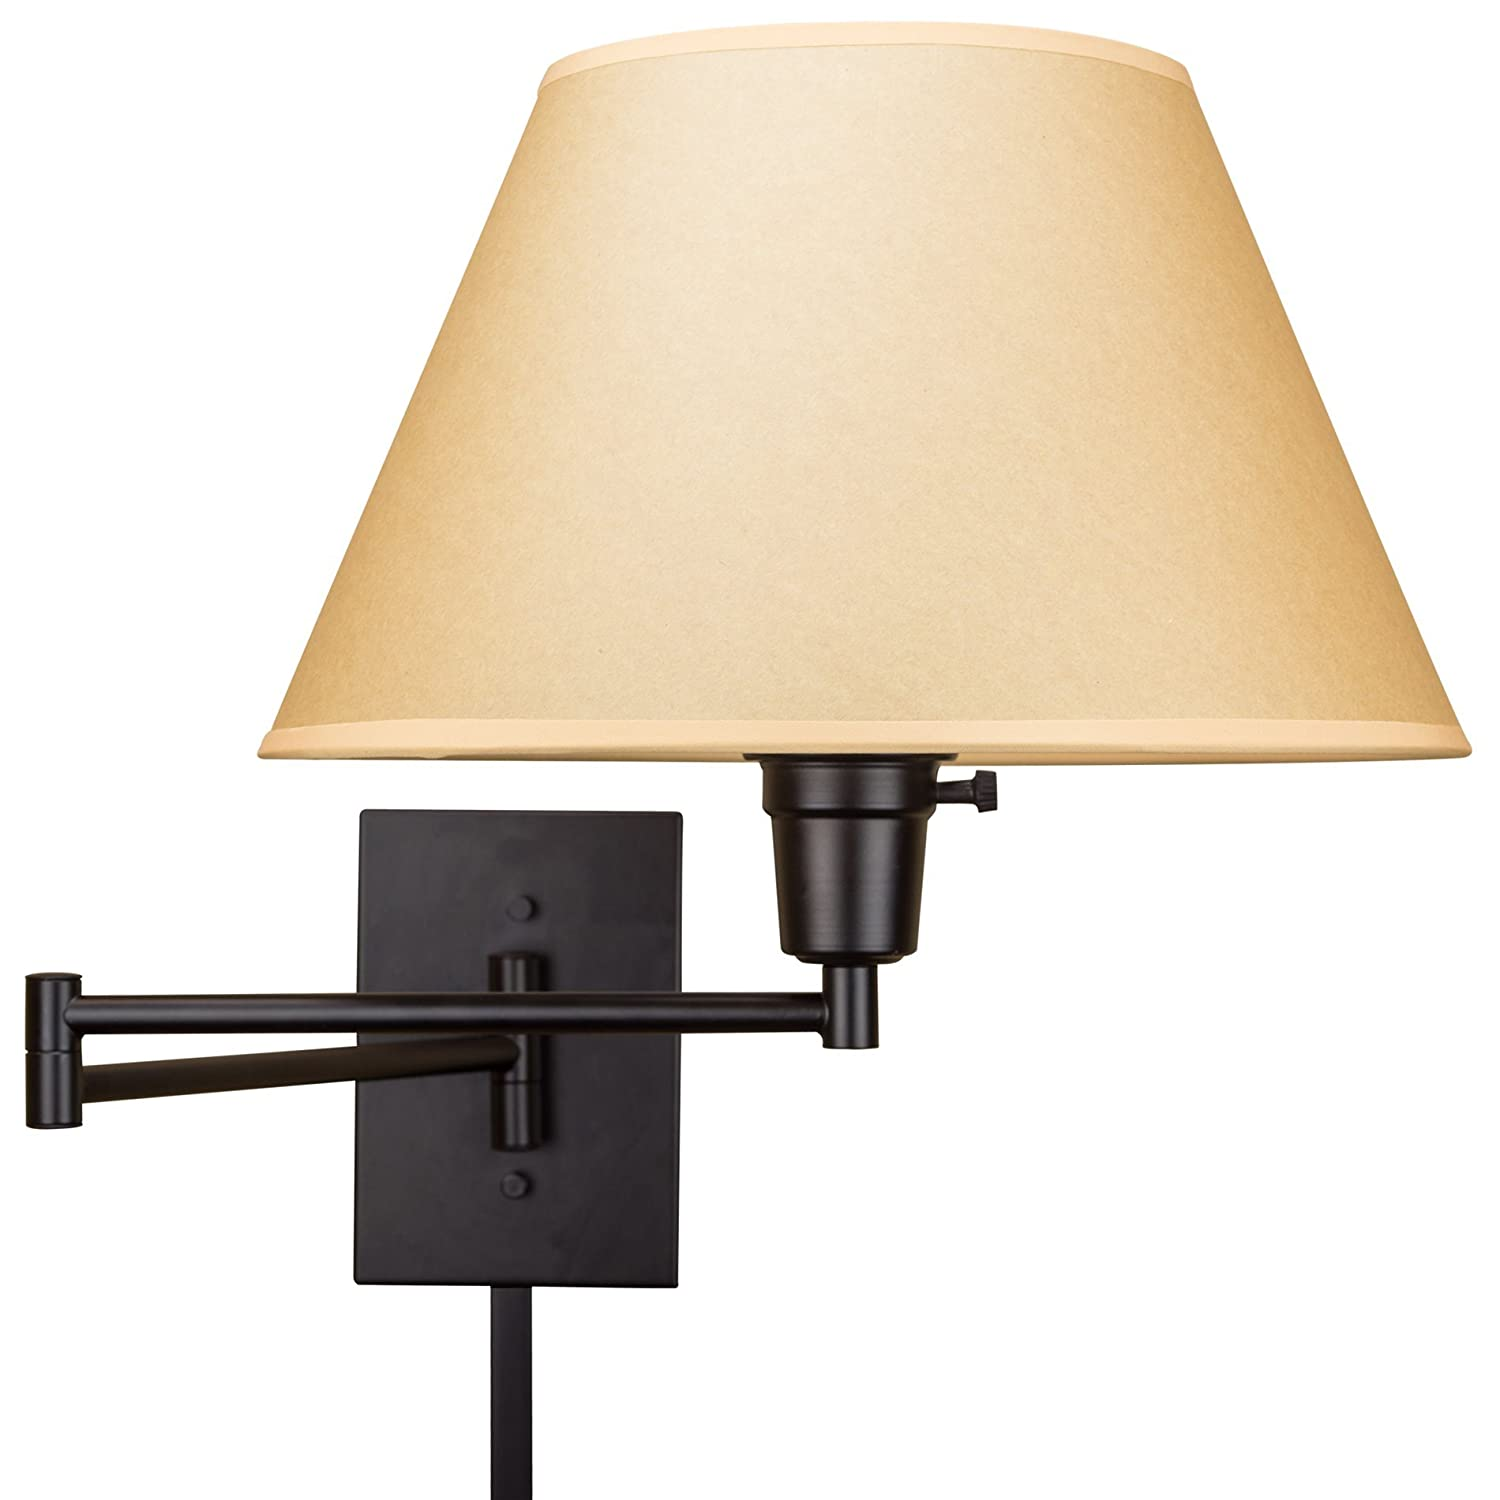 Revel cambridge 13 swing arm wall lamp plug inwall mount revel cambridge 13 swing arm wall lamp plug inwall mount opaque paper shade 150w 3 way black finish amazon mozeypictures Image collections